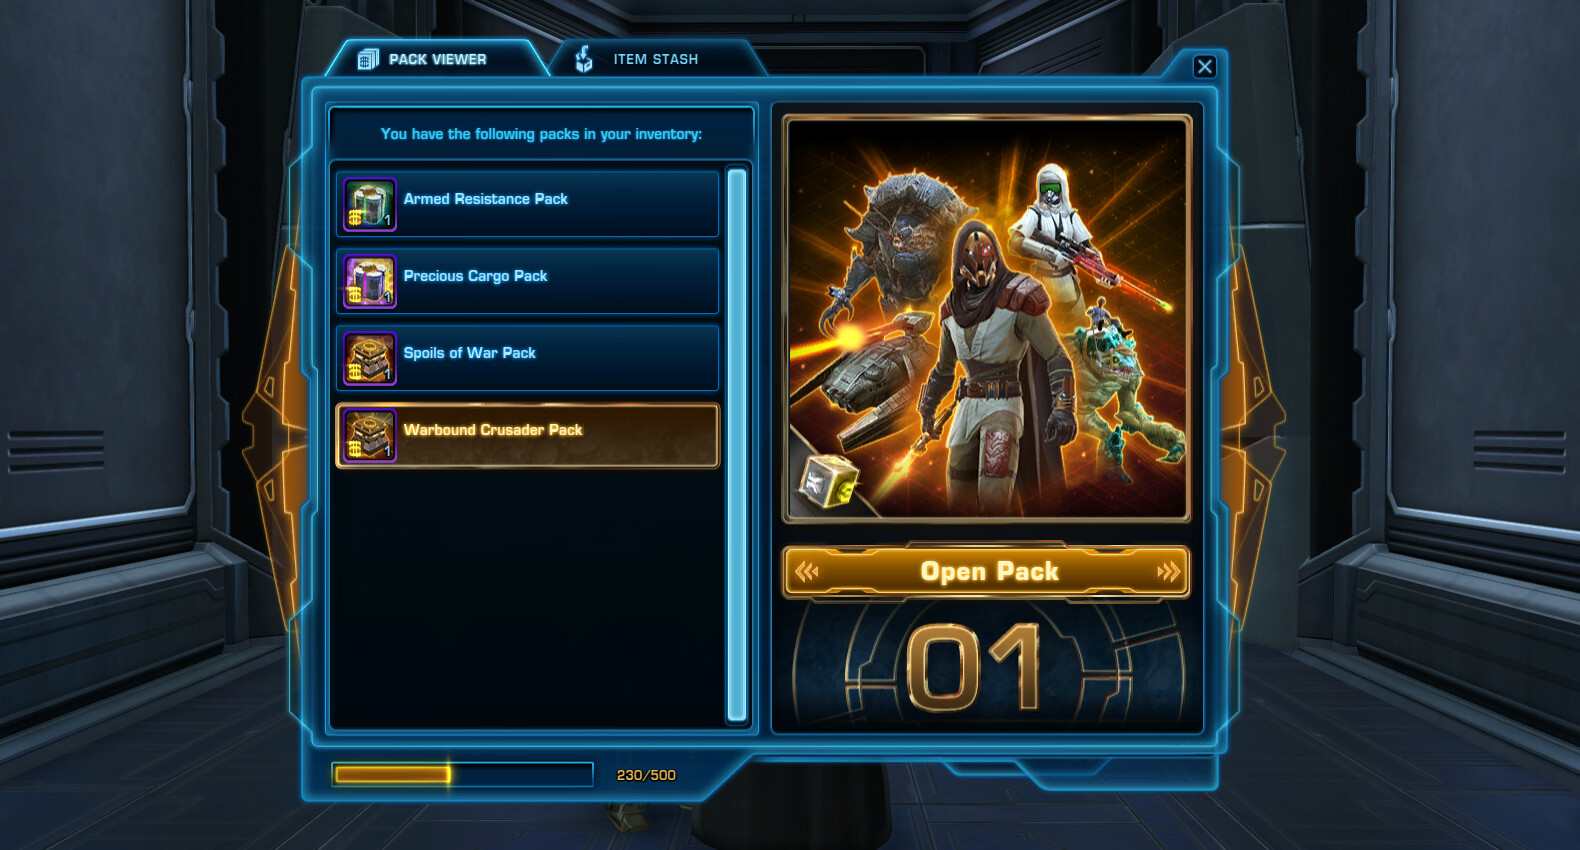 The pack viewer tab, where the player can open their Cartel Packs.